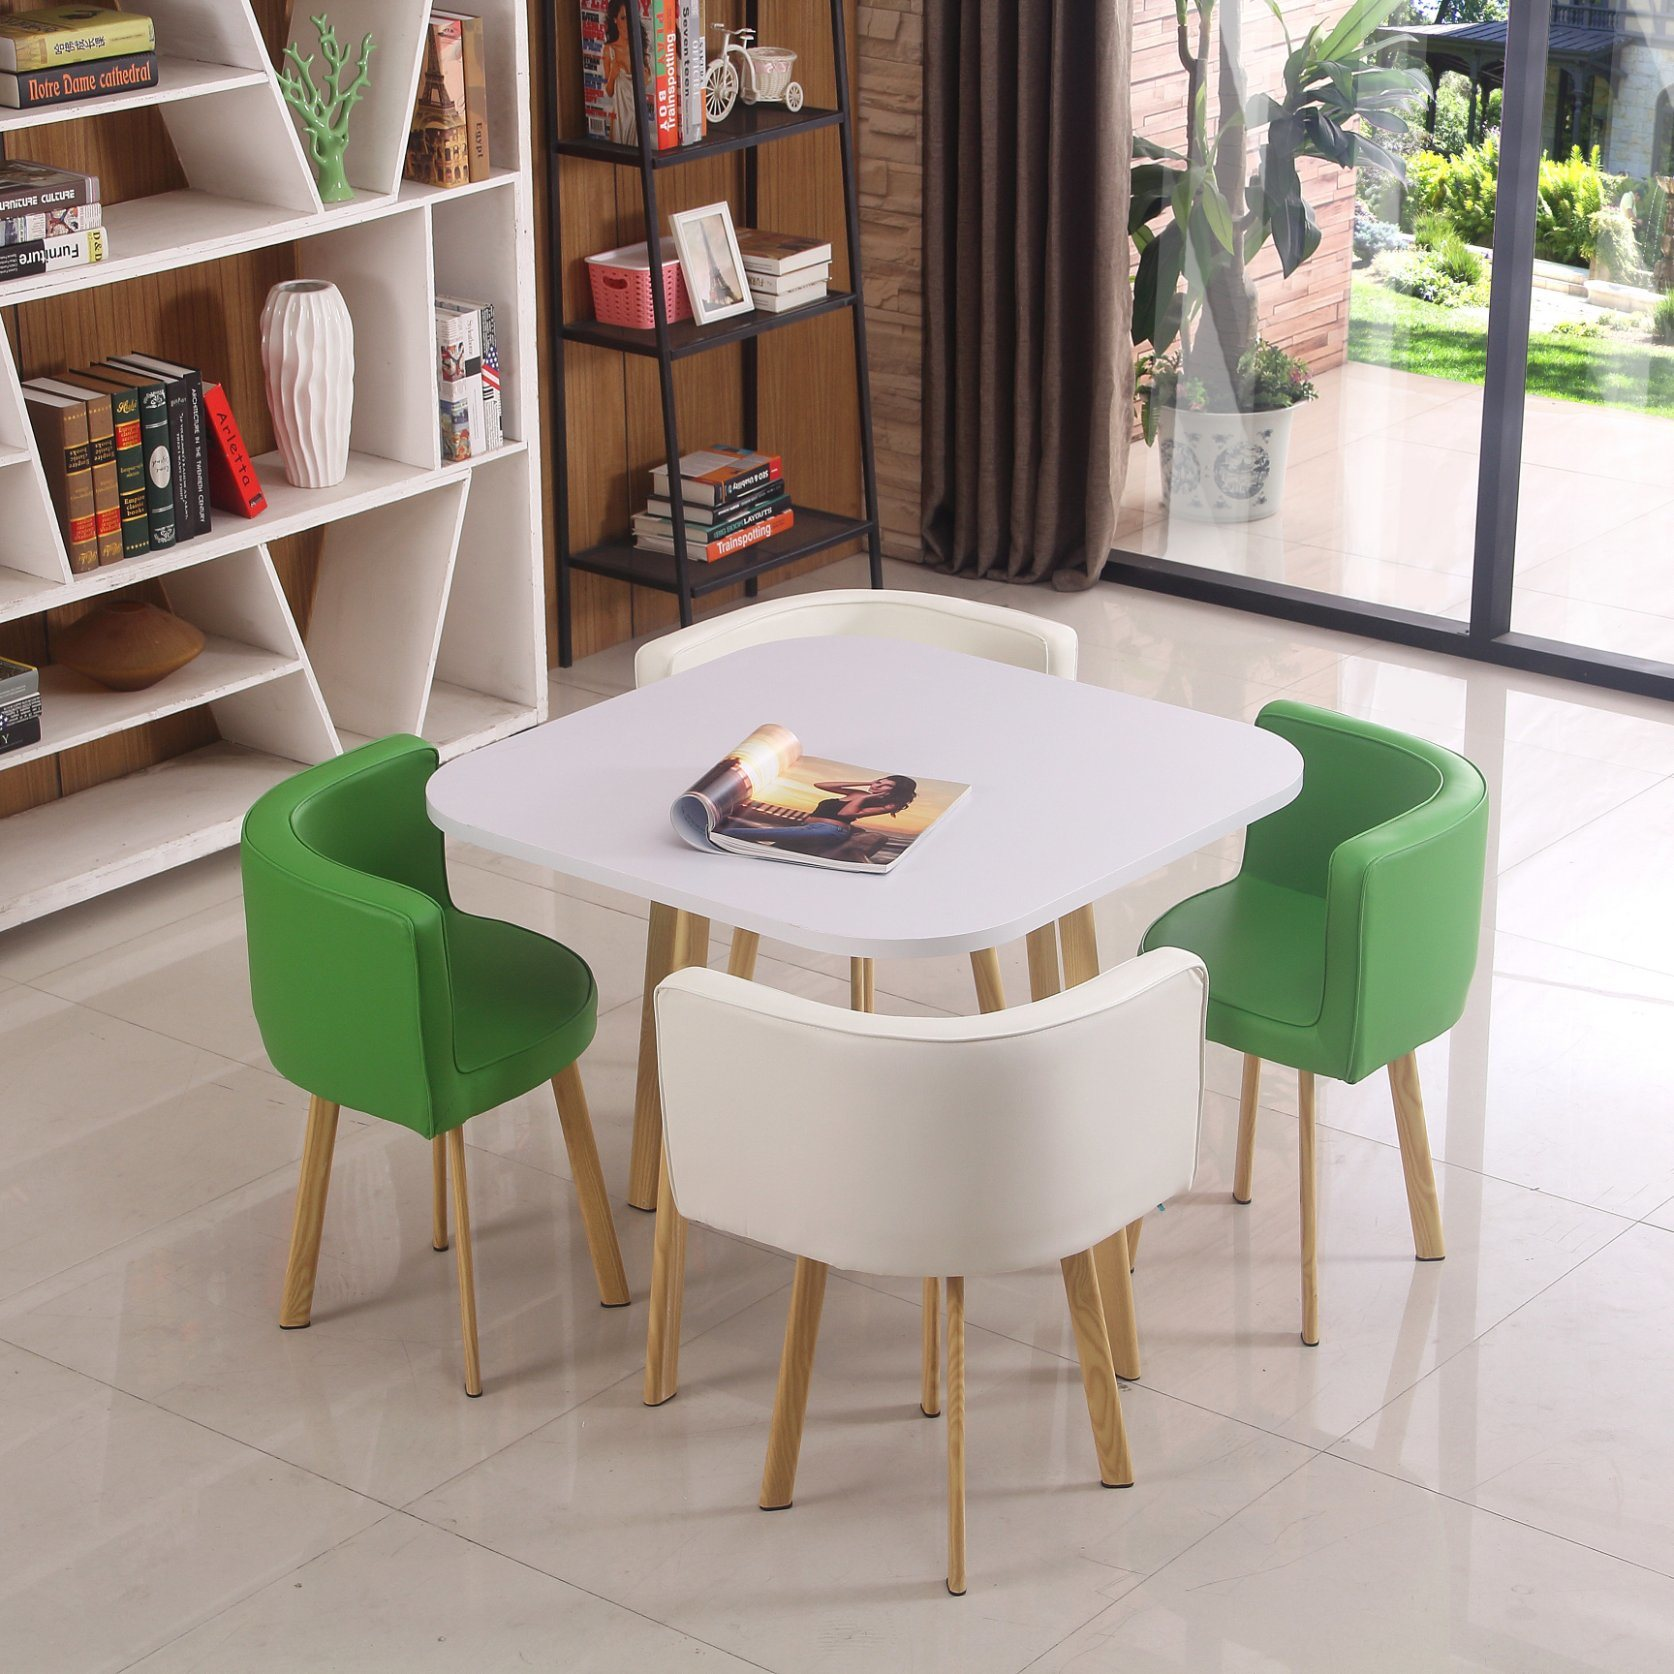 China Luxury Design Home Furniture Modern Marble Dining Table Set 4 Chairs New Design Home Furniture Modern Wooden 4 Chair Long Rectangular Dining Room Table Set China Melamine Table Sets Dining Room Furniture